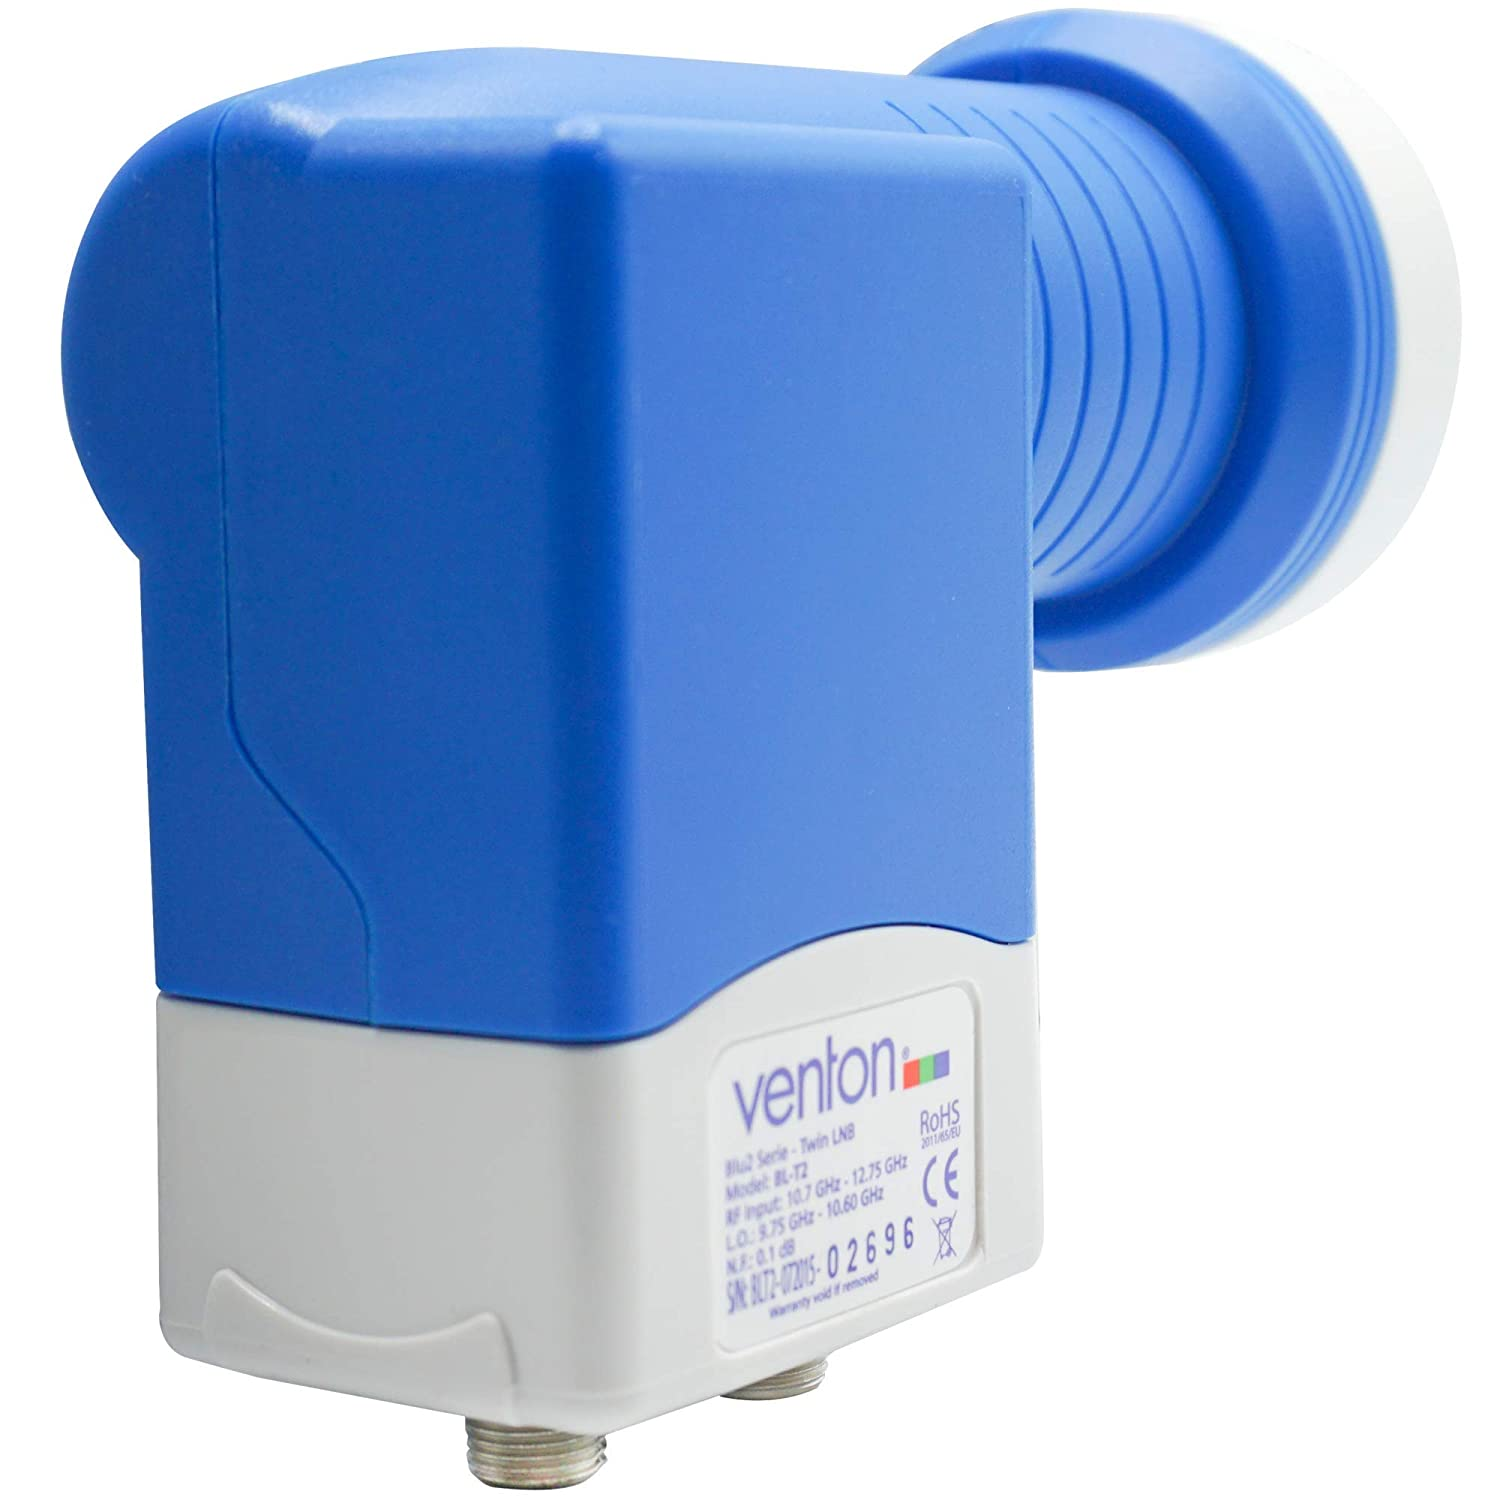 Retractable as a Set with 4/Free F-connectors gold plated contacts. Weather Proof Venton Twin LNB Digital 0.1dB for 2/x Direct Connection Full Ultra HD TV 3D 4K